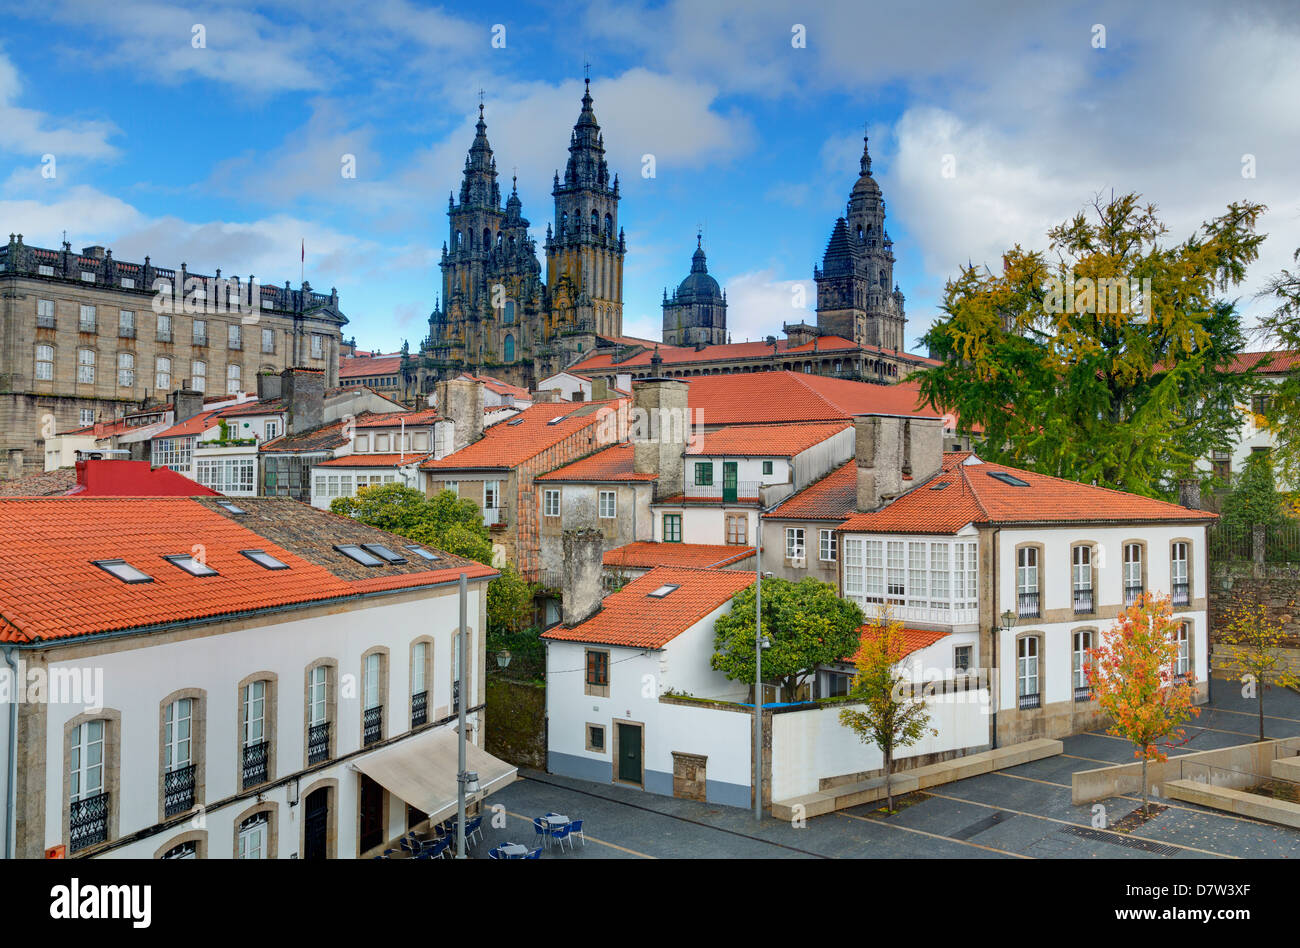 Cathedral spires in Old Town, Santiago de Compostela, UNESCO World Heritage Site, Galicia, Spain - Stock Image